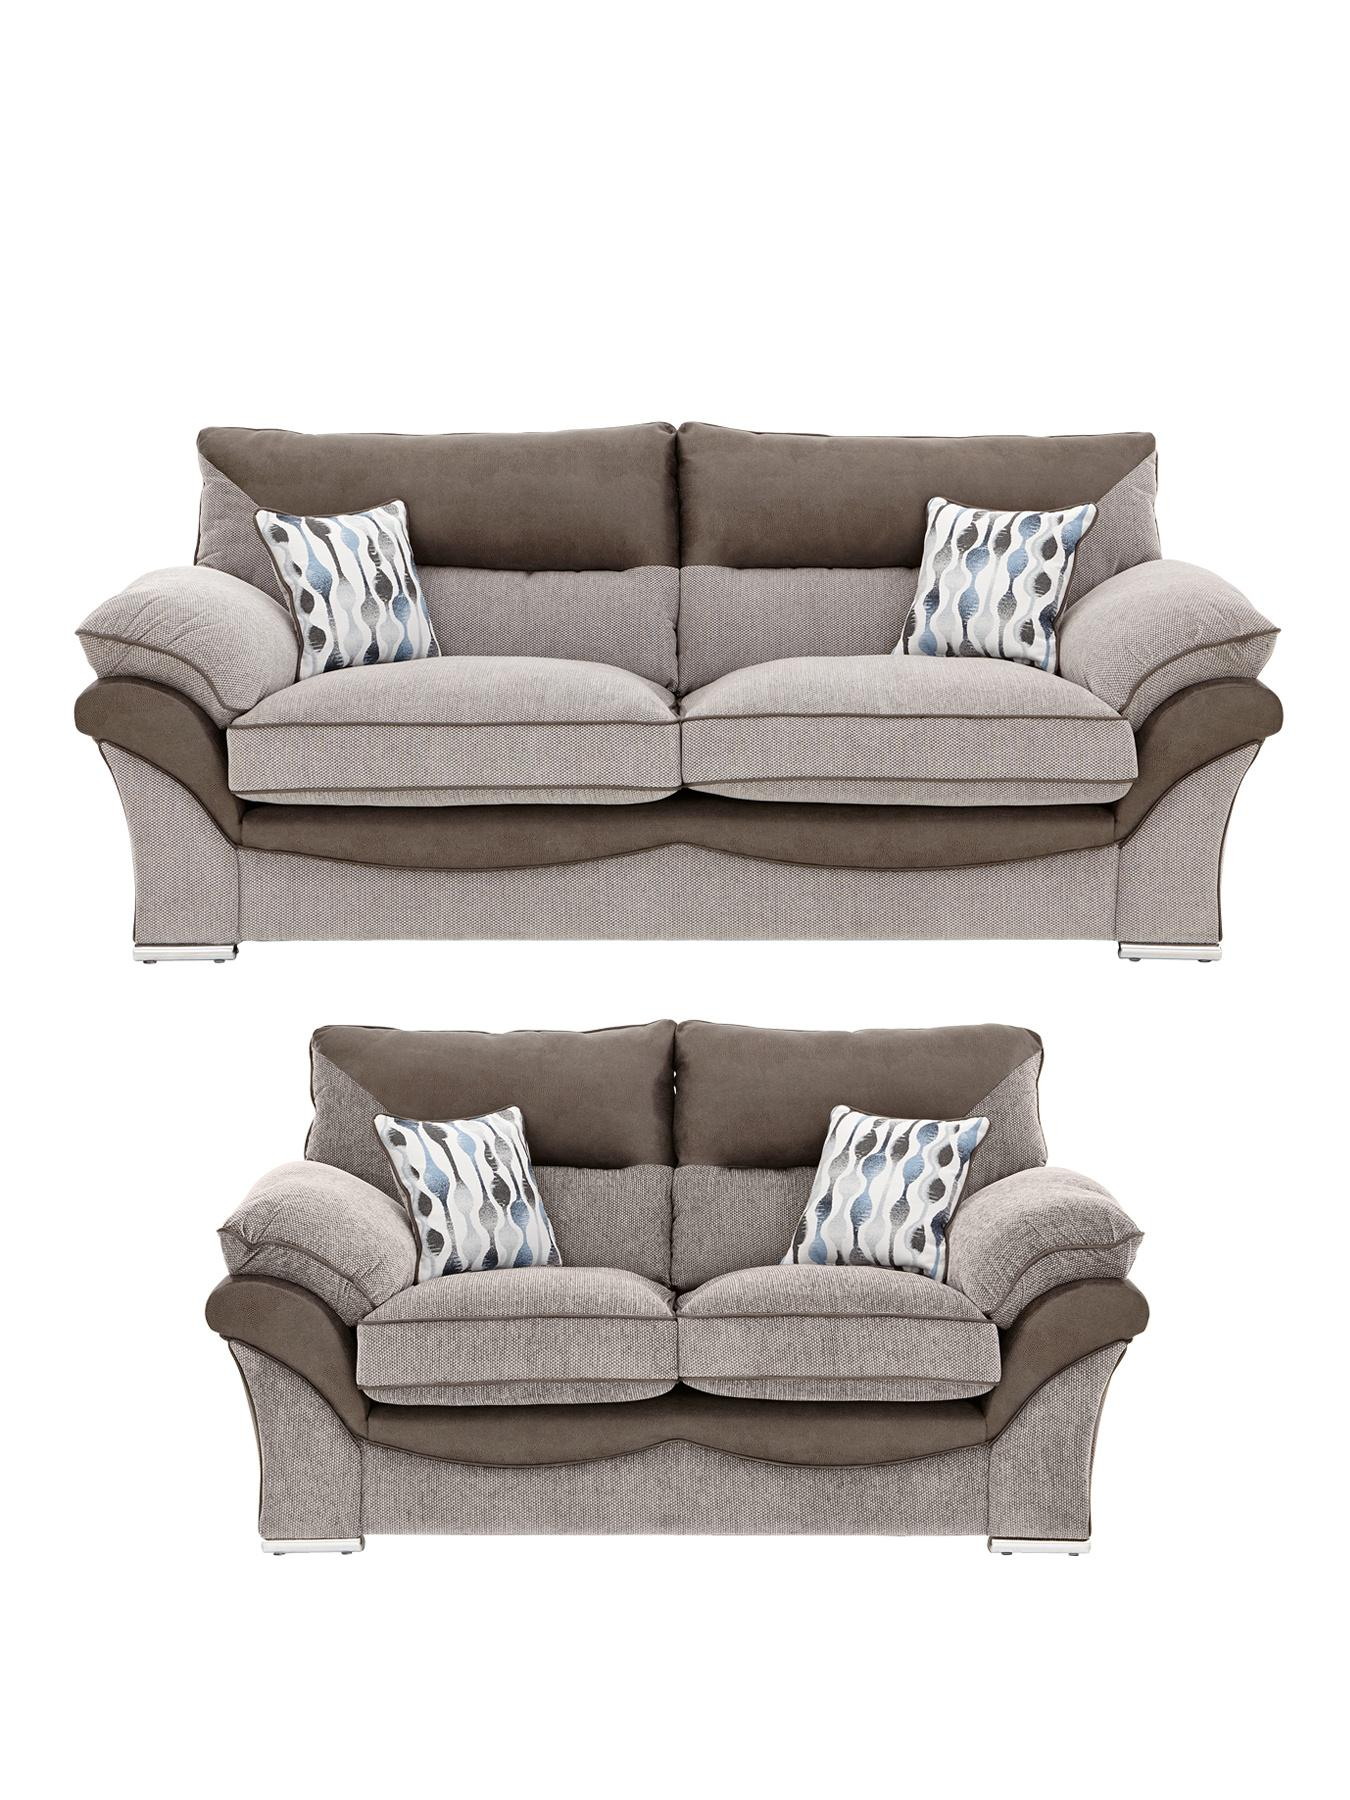 Hampton 3-Seater plus 2-Seater Sofa - Silver, Silver,Grey